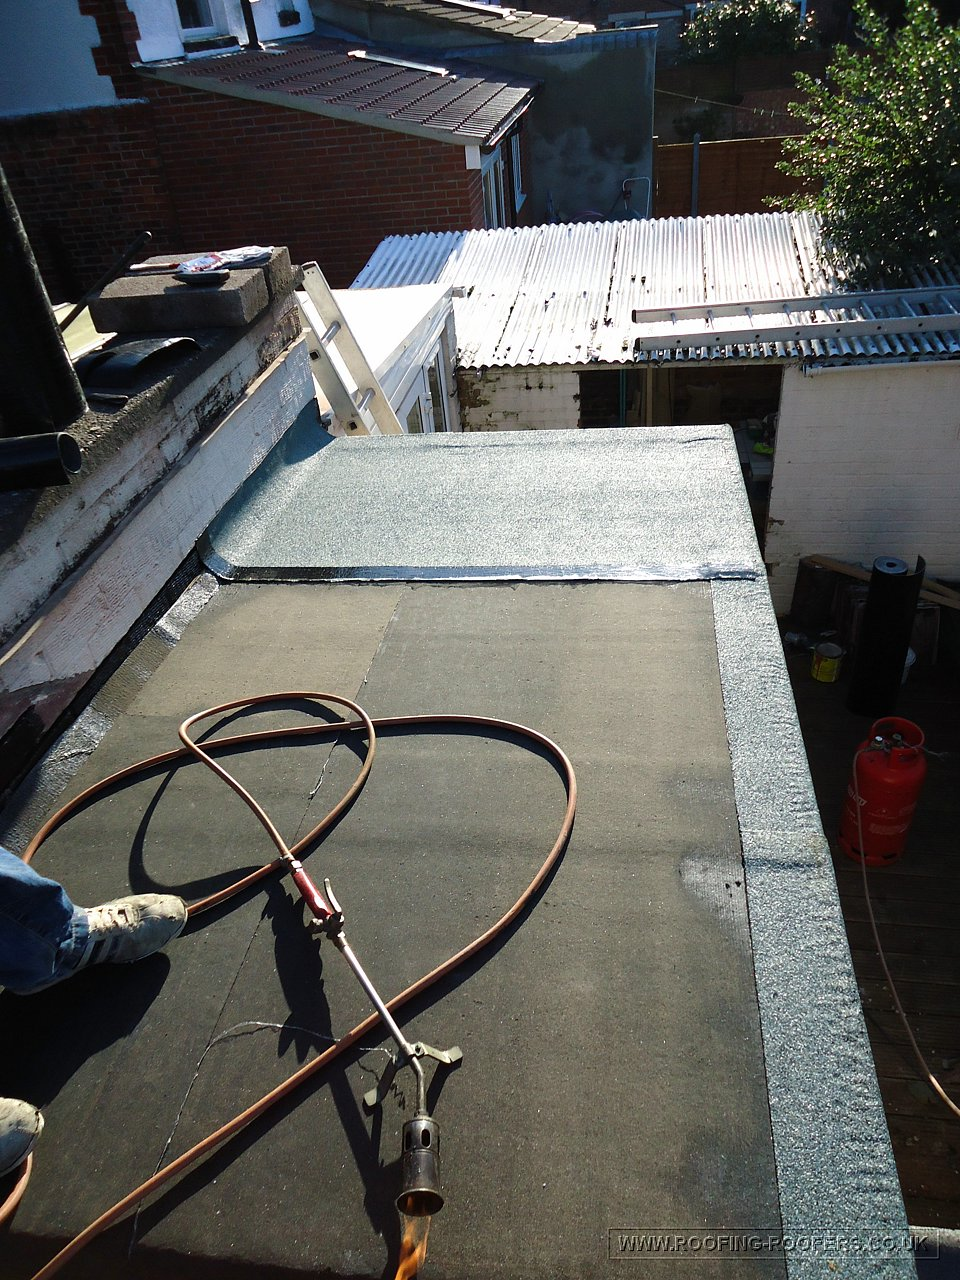 Flat Roof Using Marley Sbs Torch On Felt System To Small